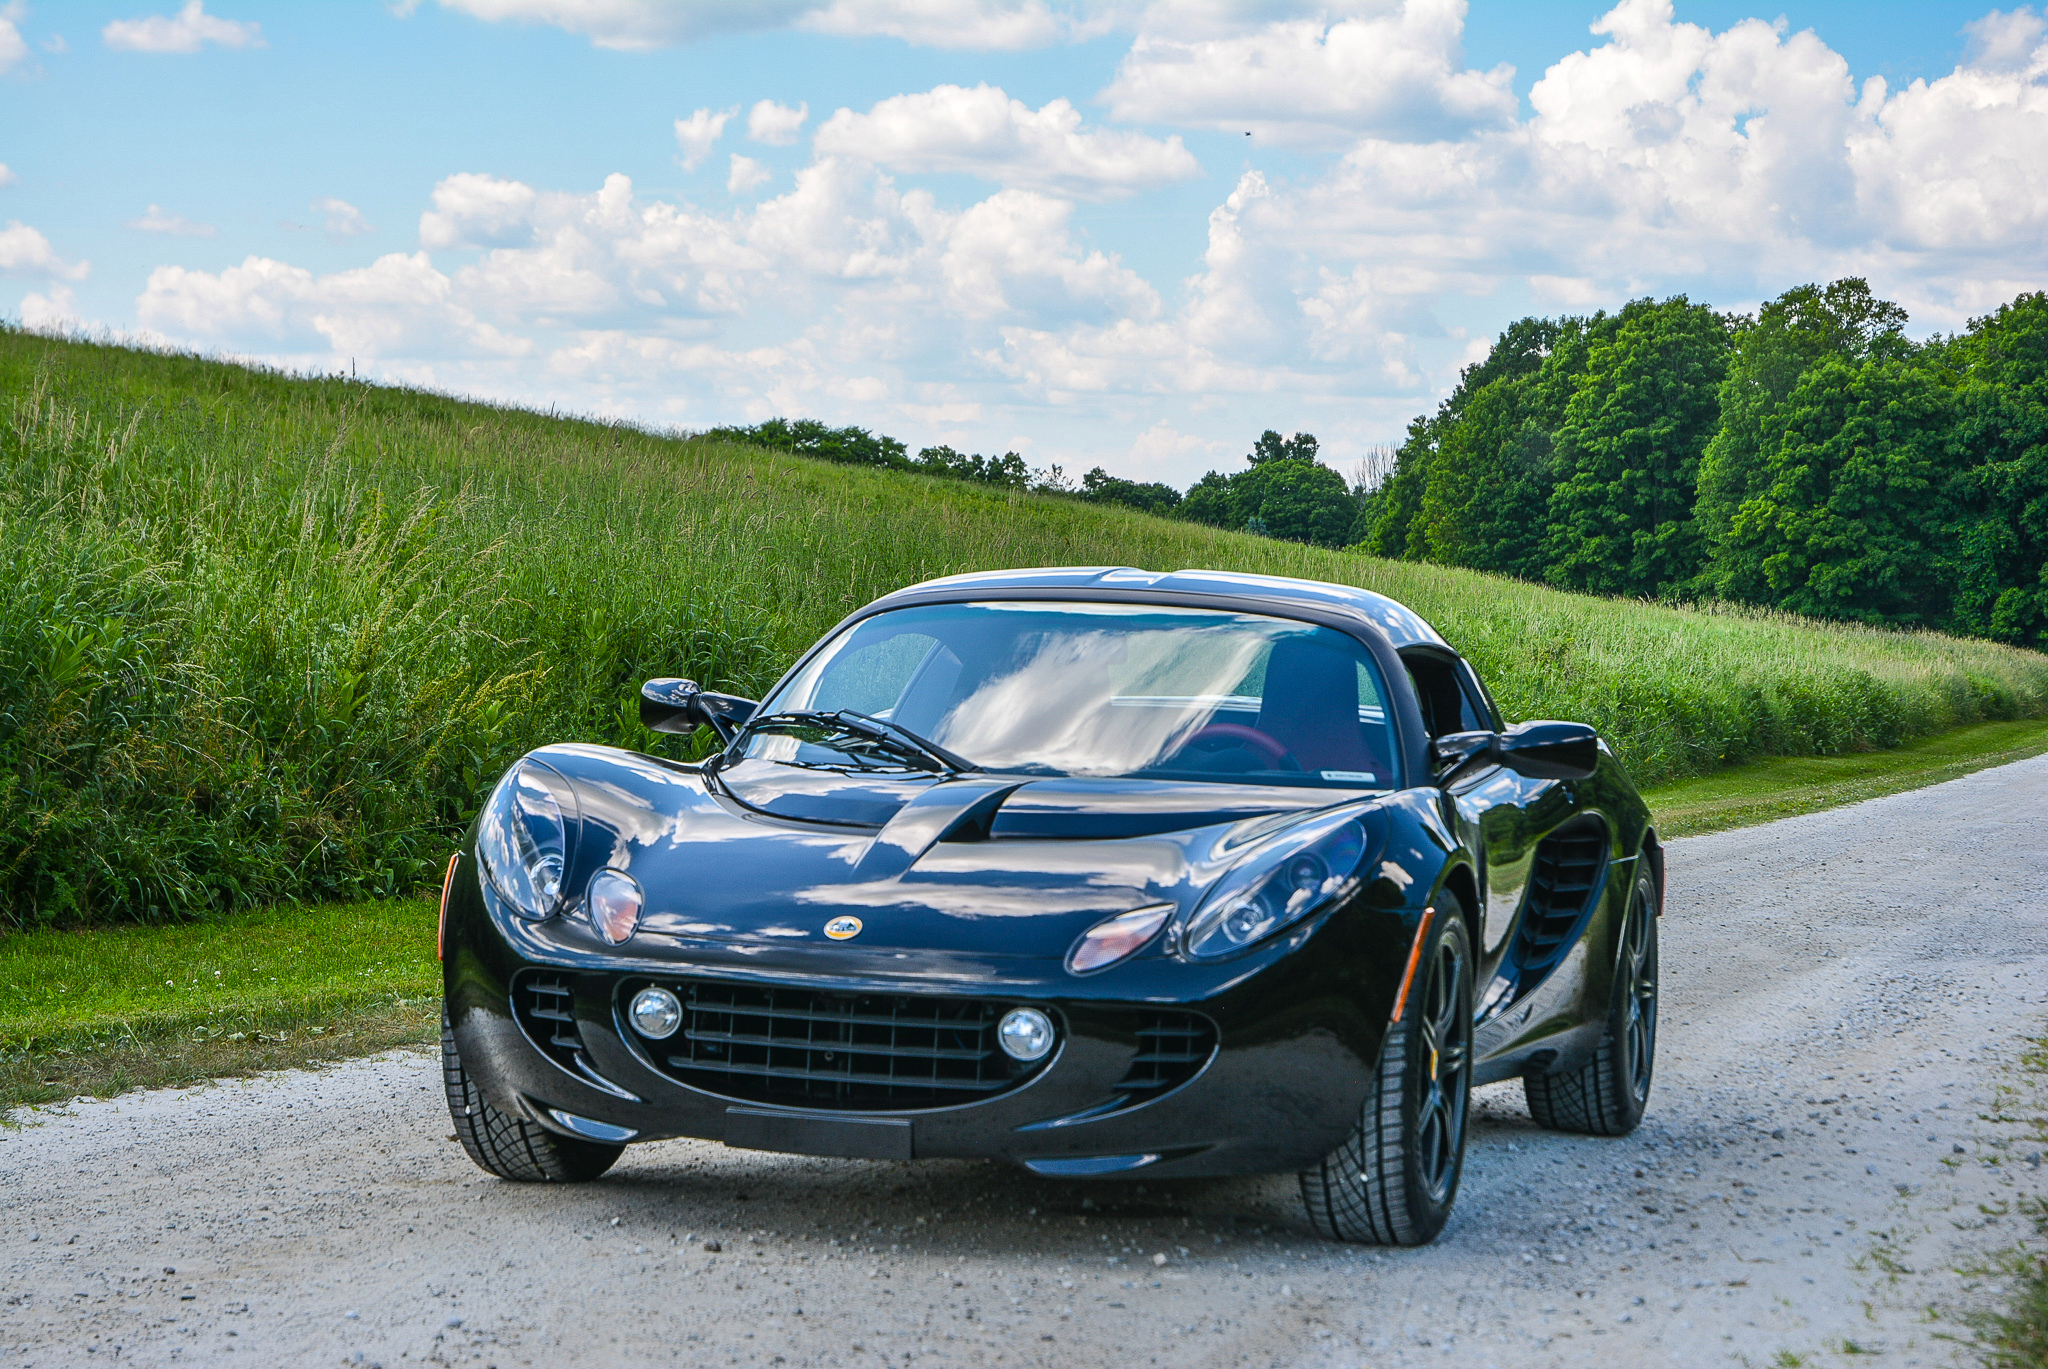 2005 lotus elise hunting ridge motors edition image id 369214 image abyss image abyss alpha coders